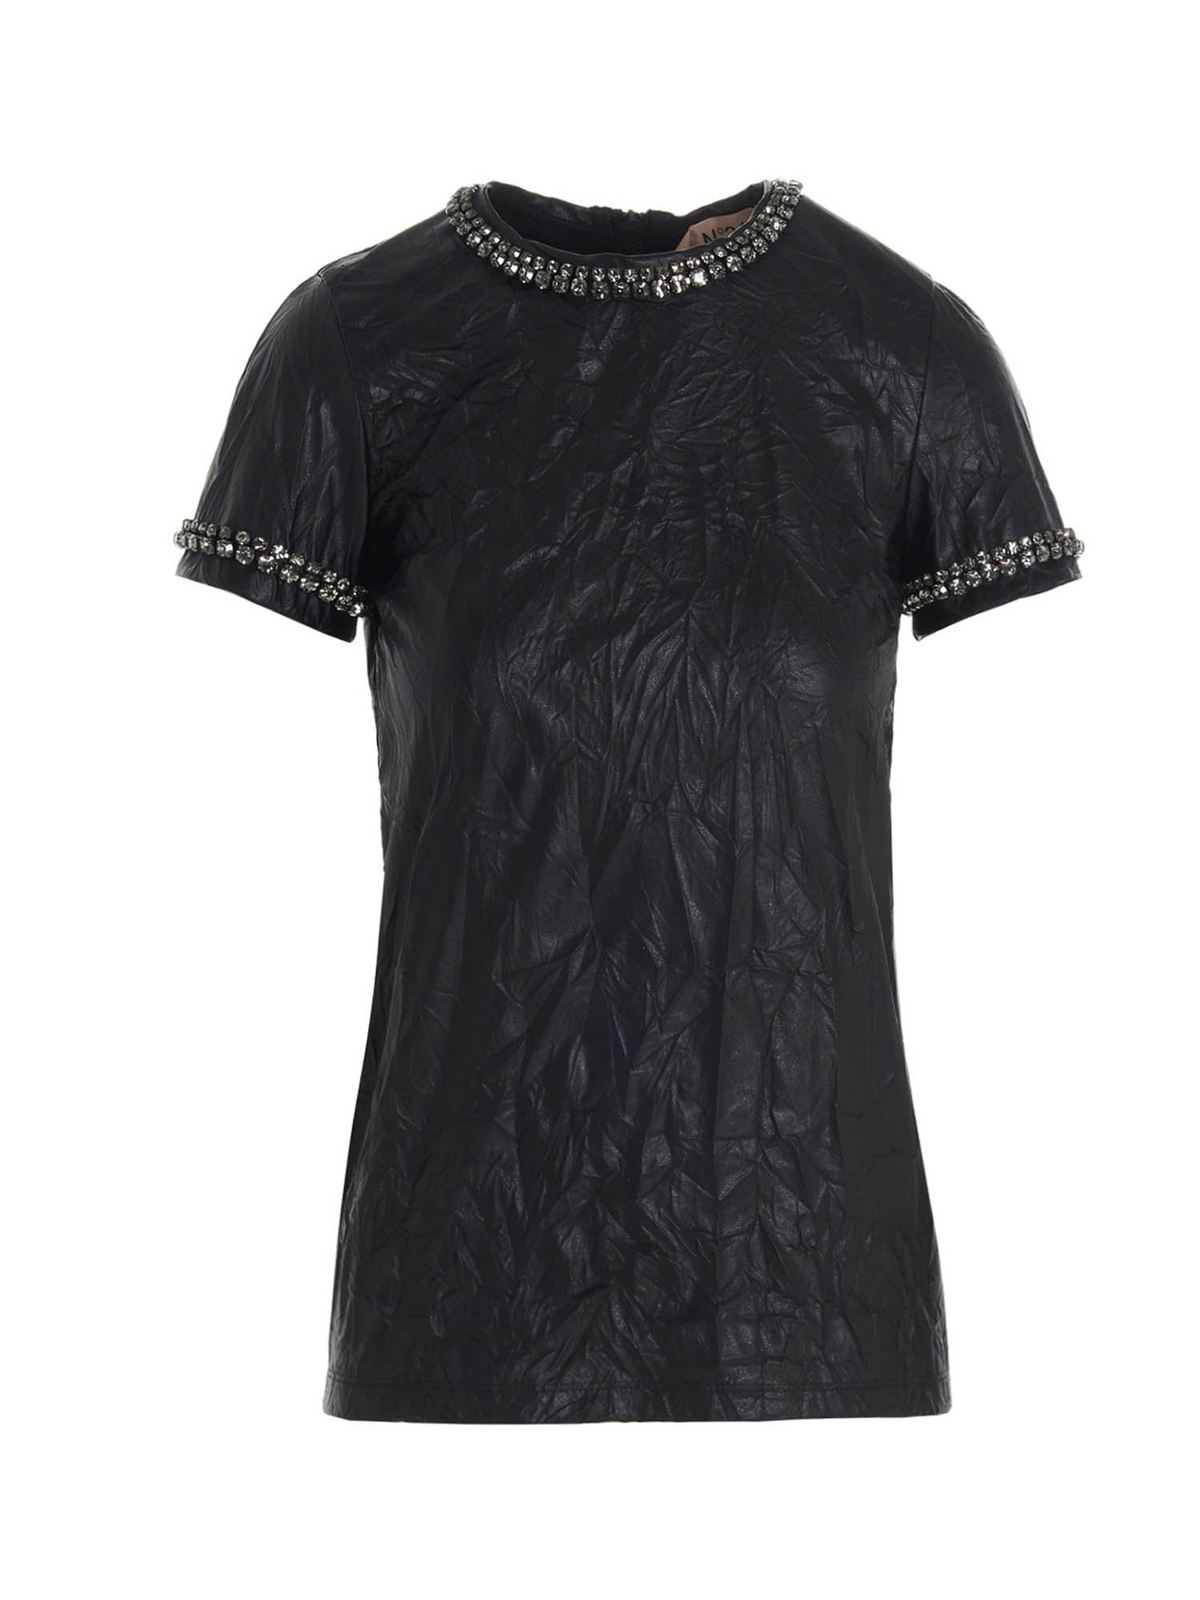 N°21 CRACKLE EFFECT TOP IN BLACK